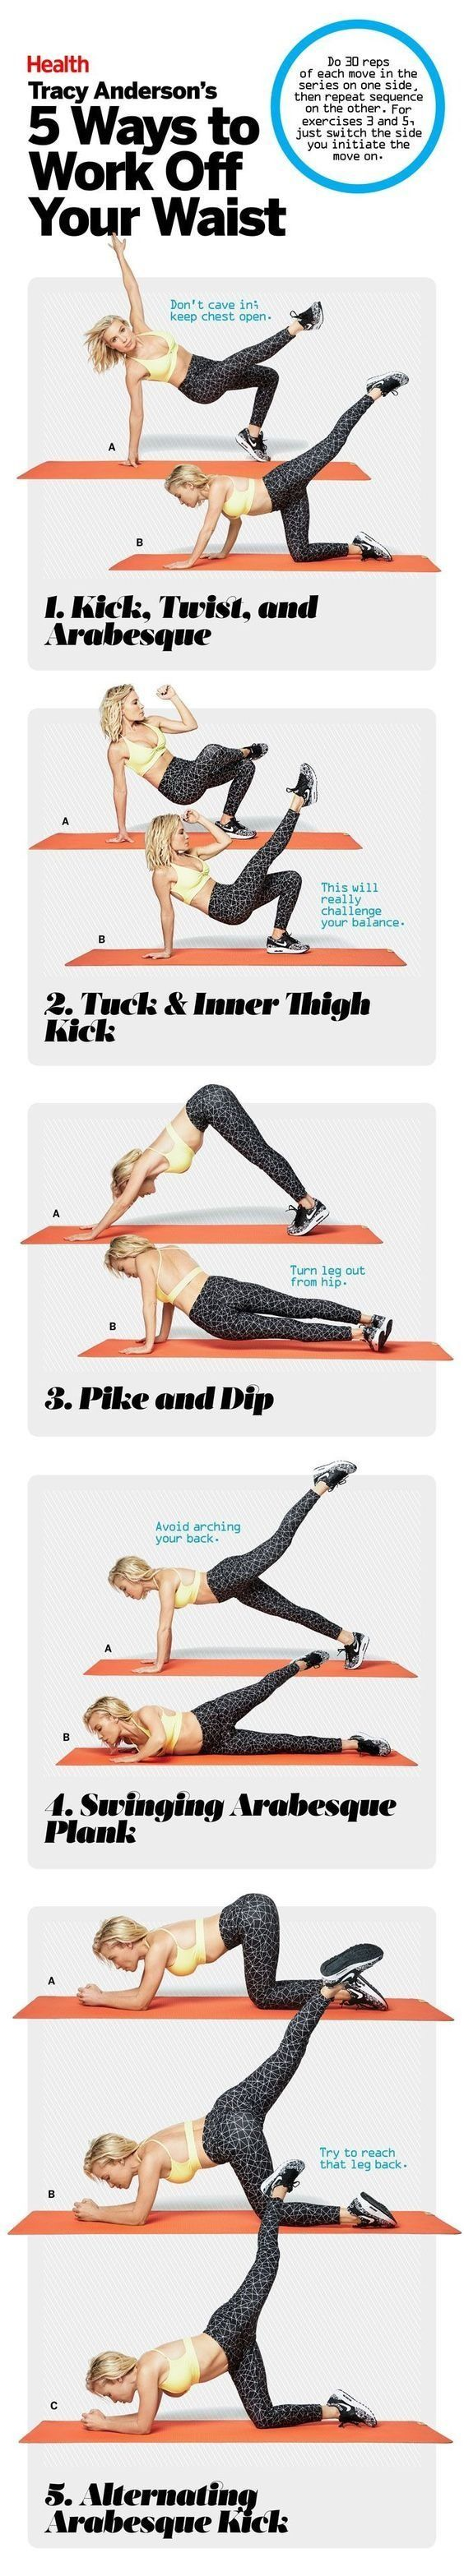 Because Tracy Anderson knows best. Here are 5 of the star trainer's fave exercises to work off your waist.   Health.com